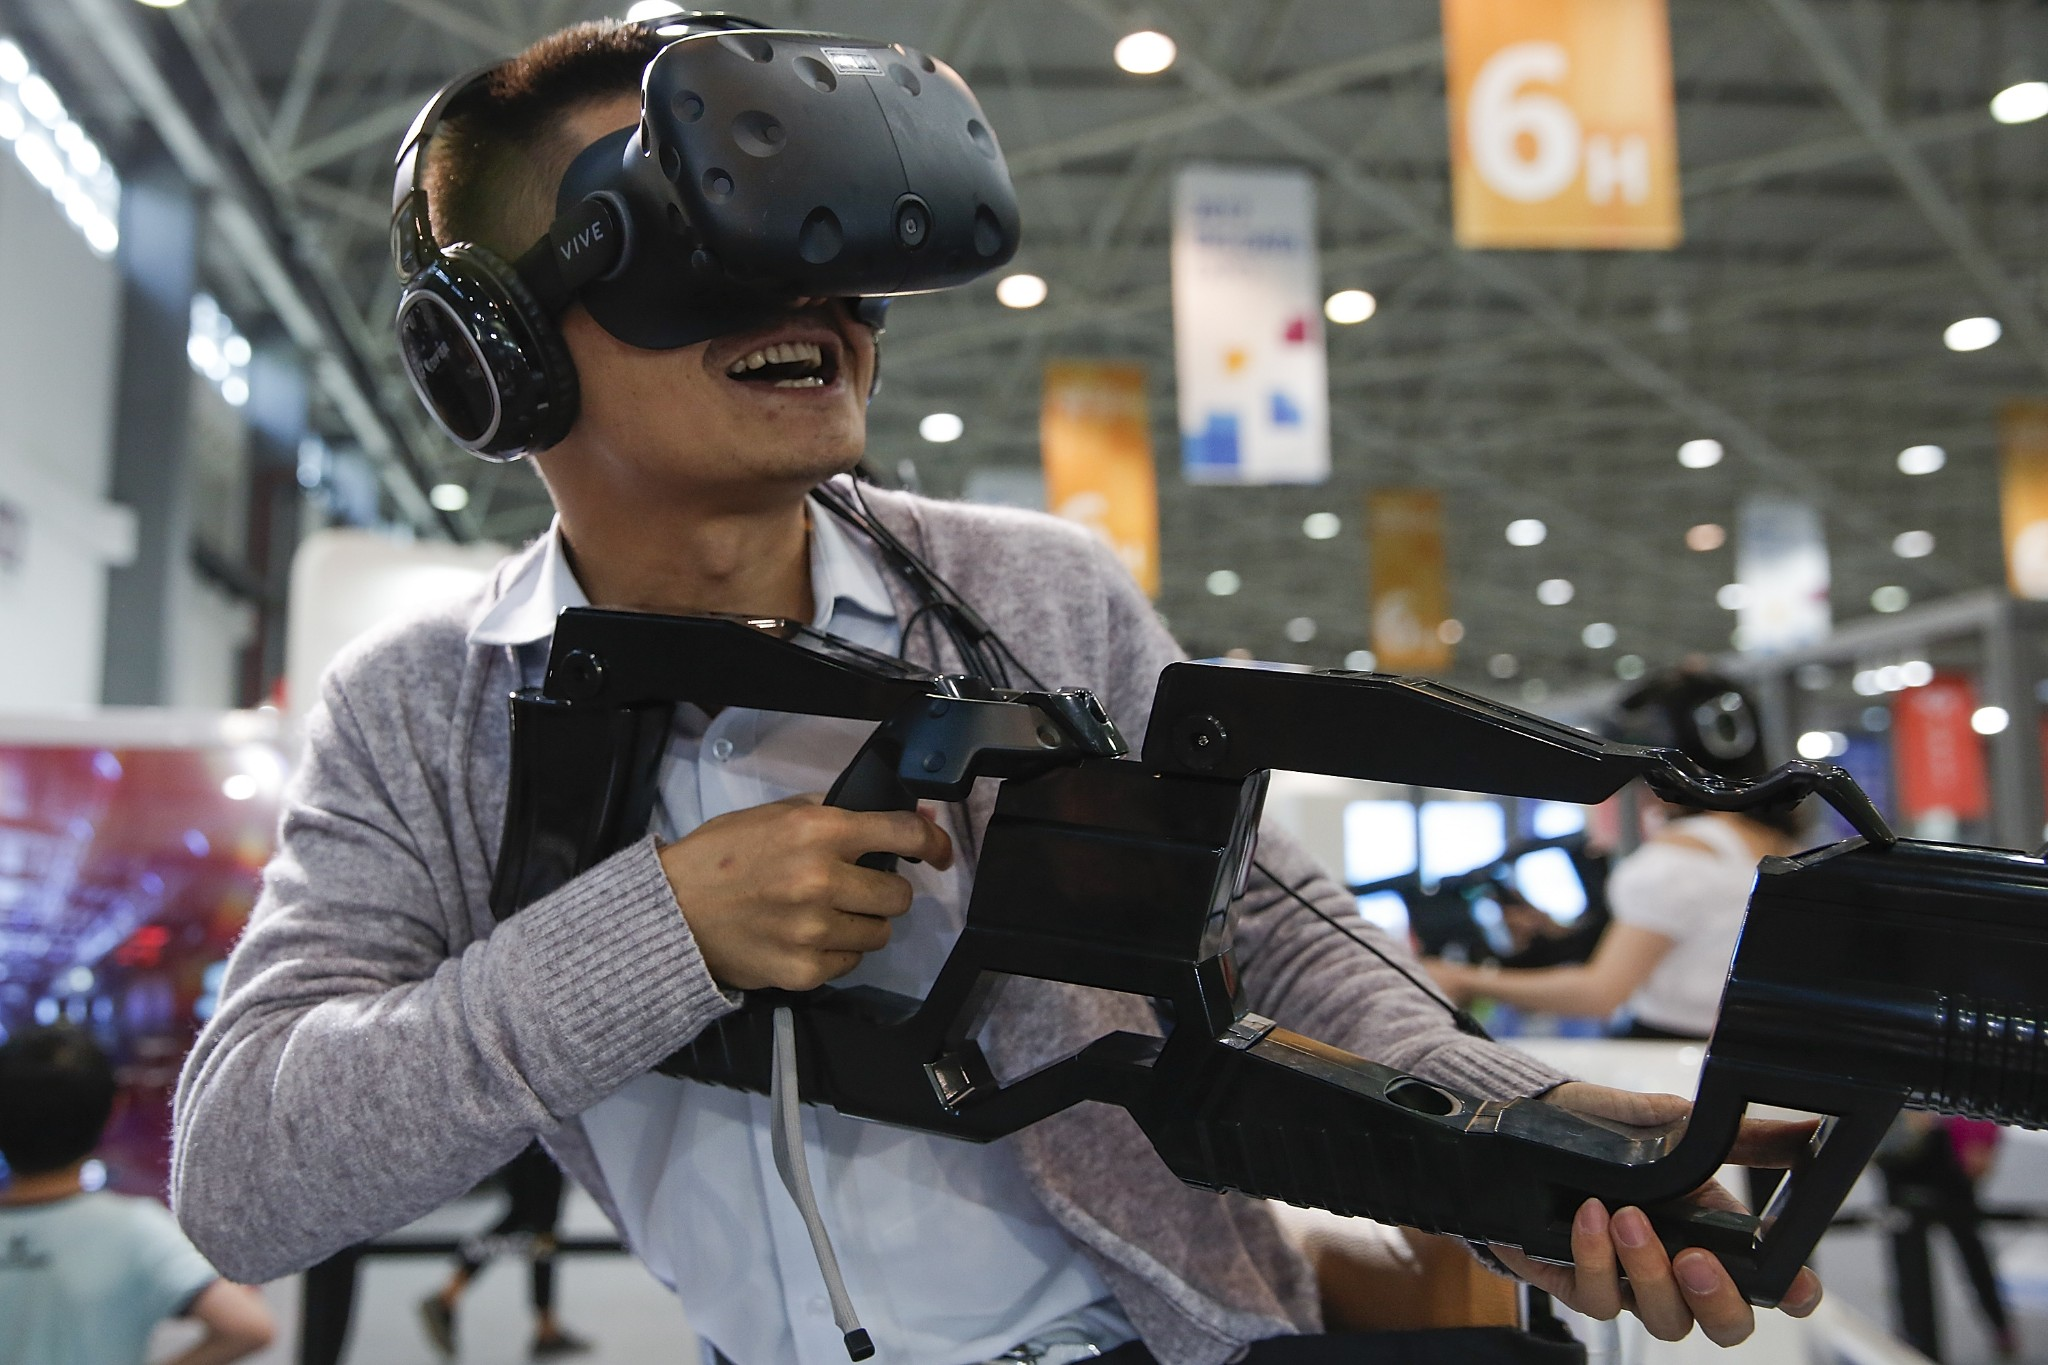 The state of virtual reality